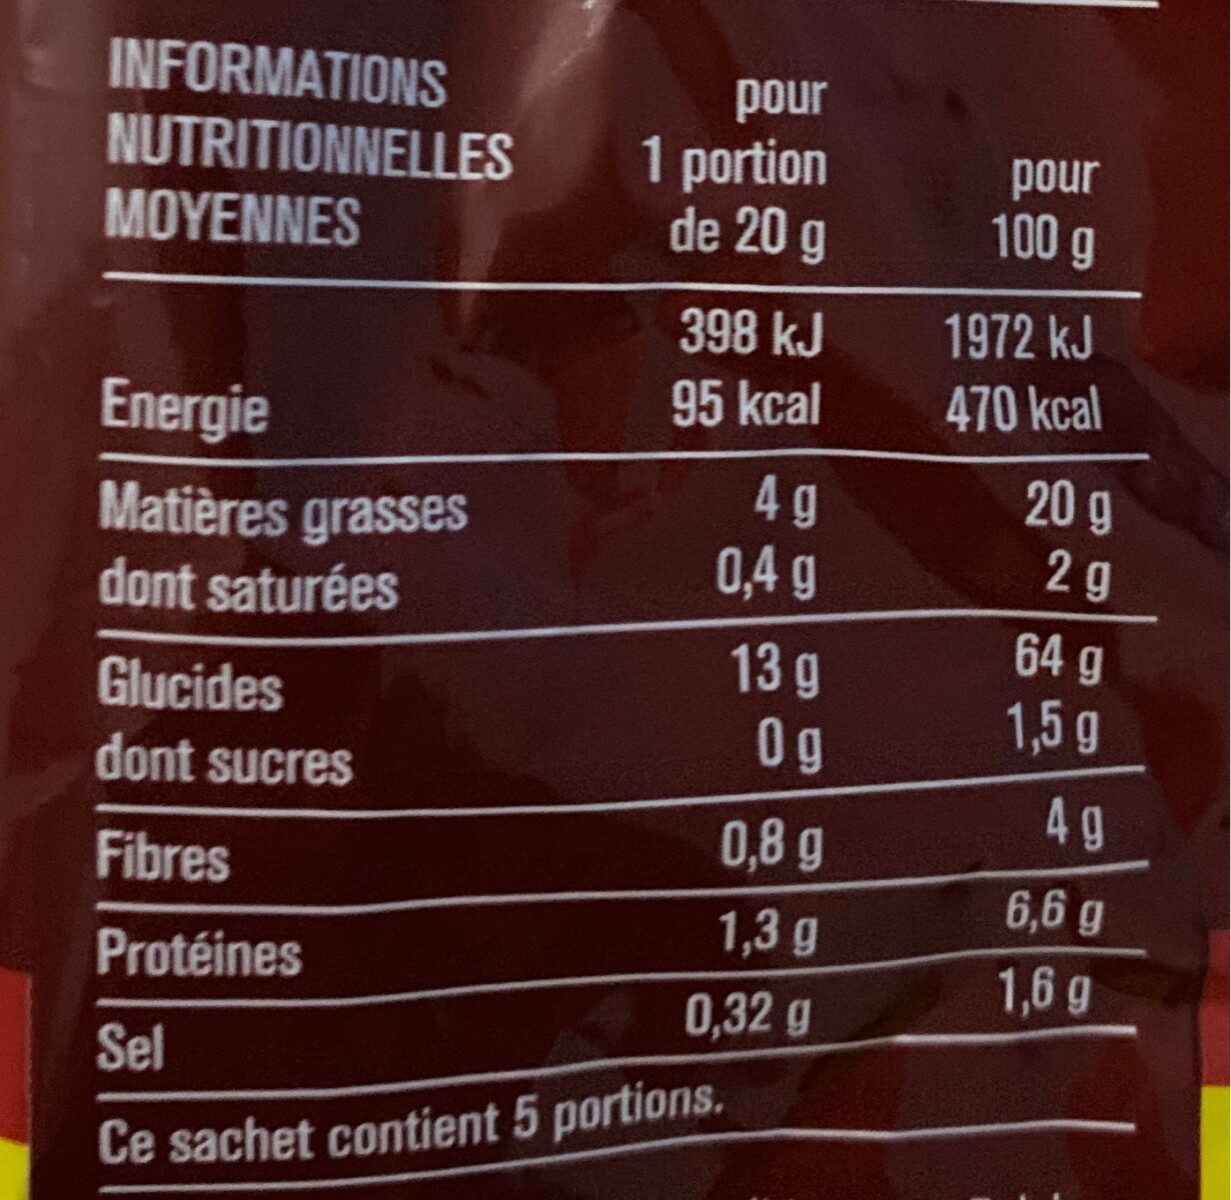 Tortillas Chips goût Chili - Nutrition facts - fr